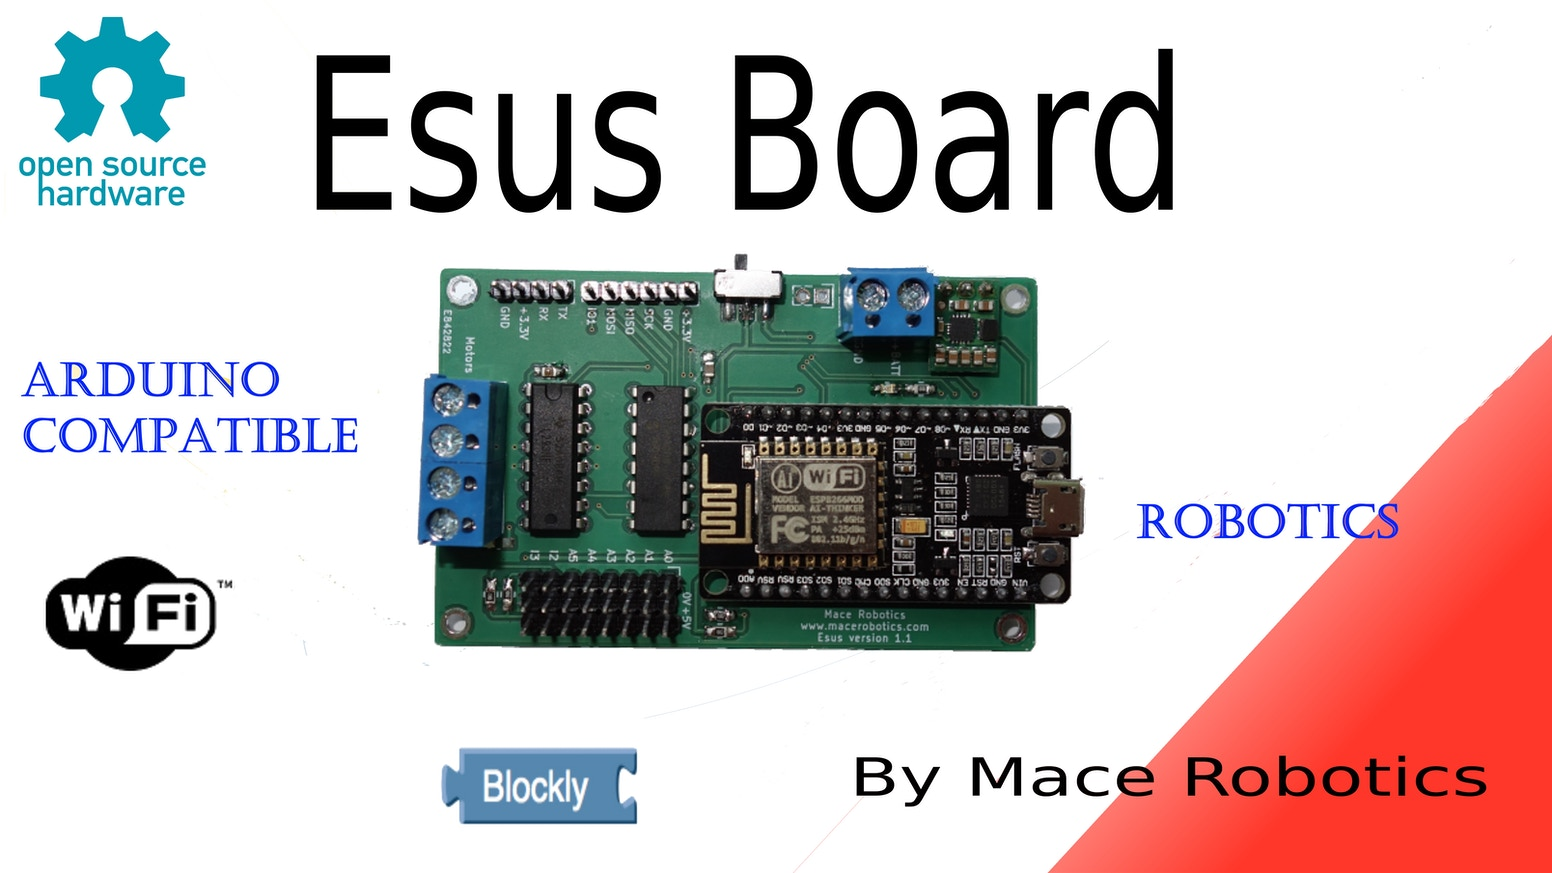 Esus board - Awesome Wifi robotics & IoT controller ! by